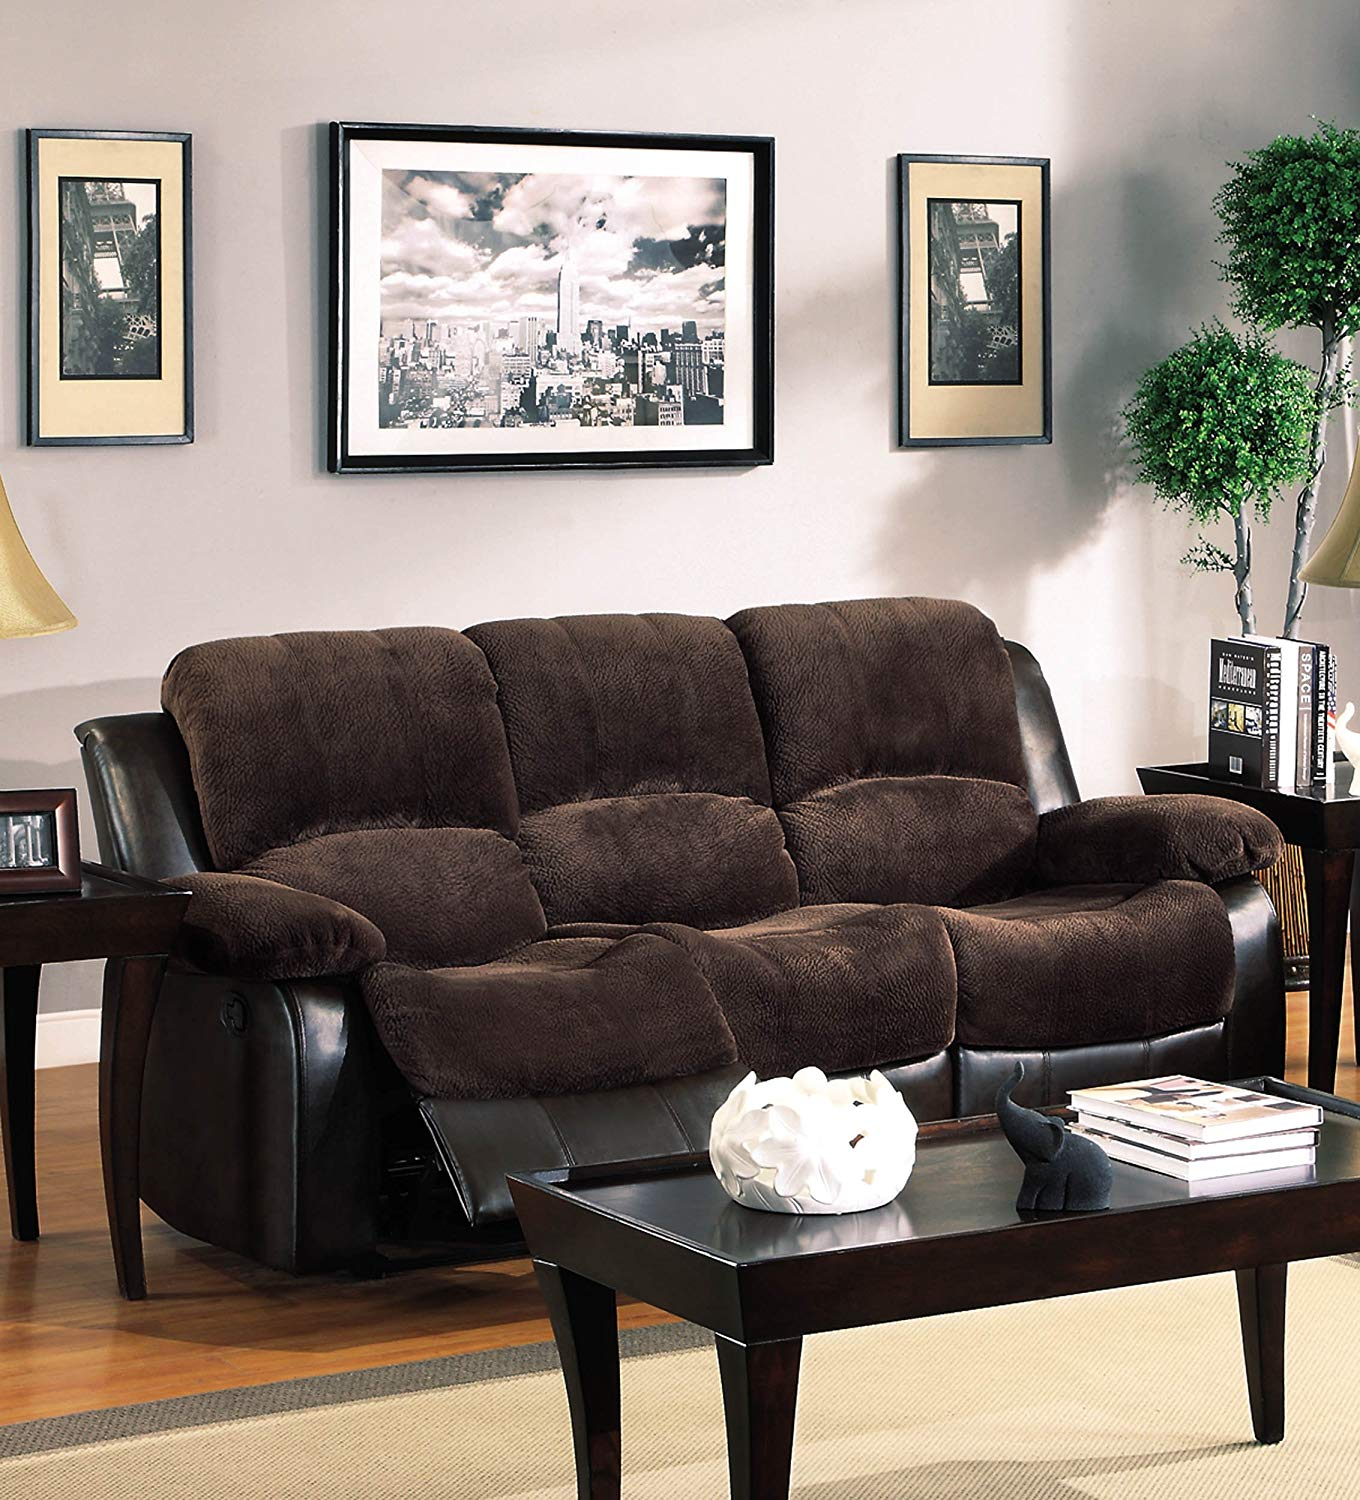 Leather Sofa Price: Best Prices Homelegance Leather Reclining Sofa Review